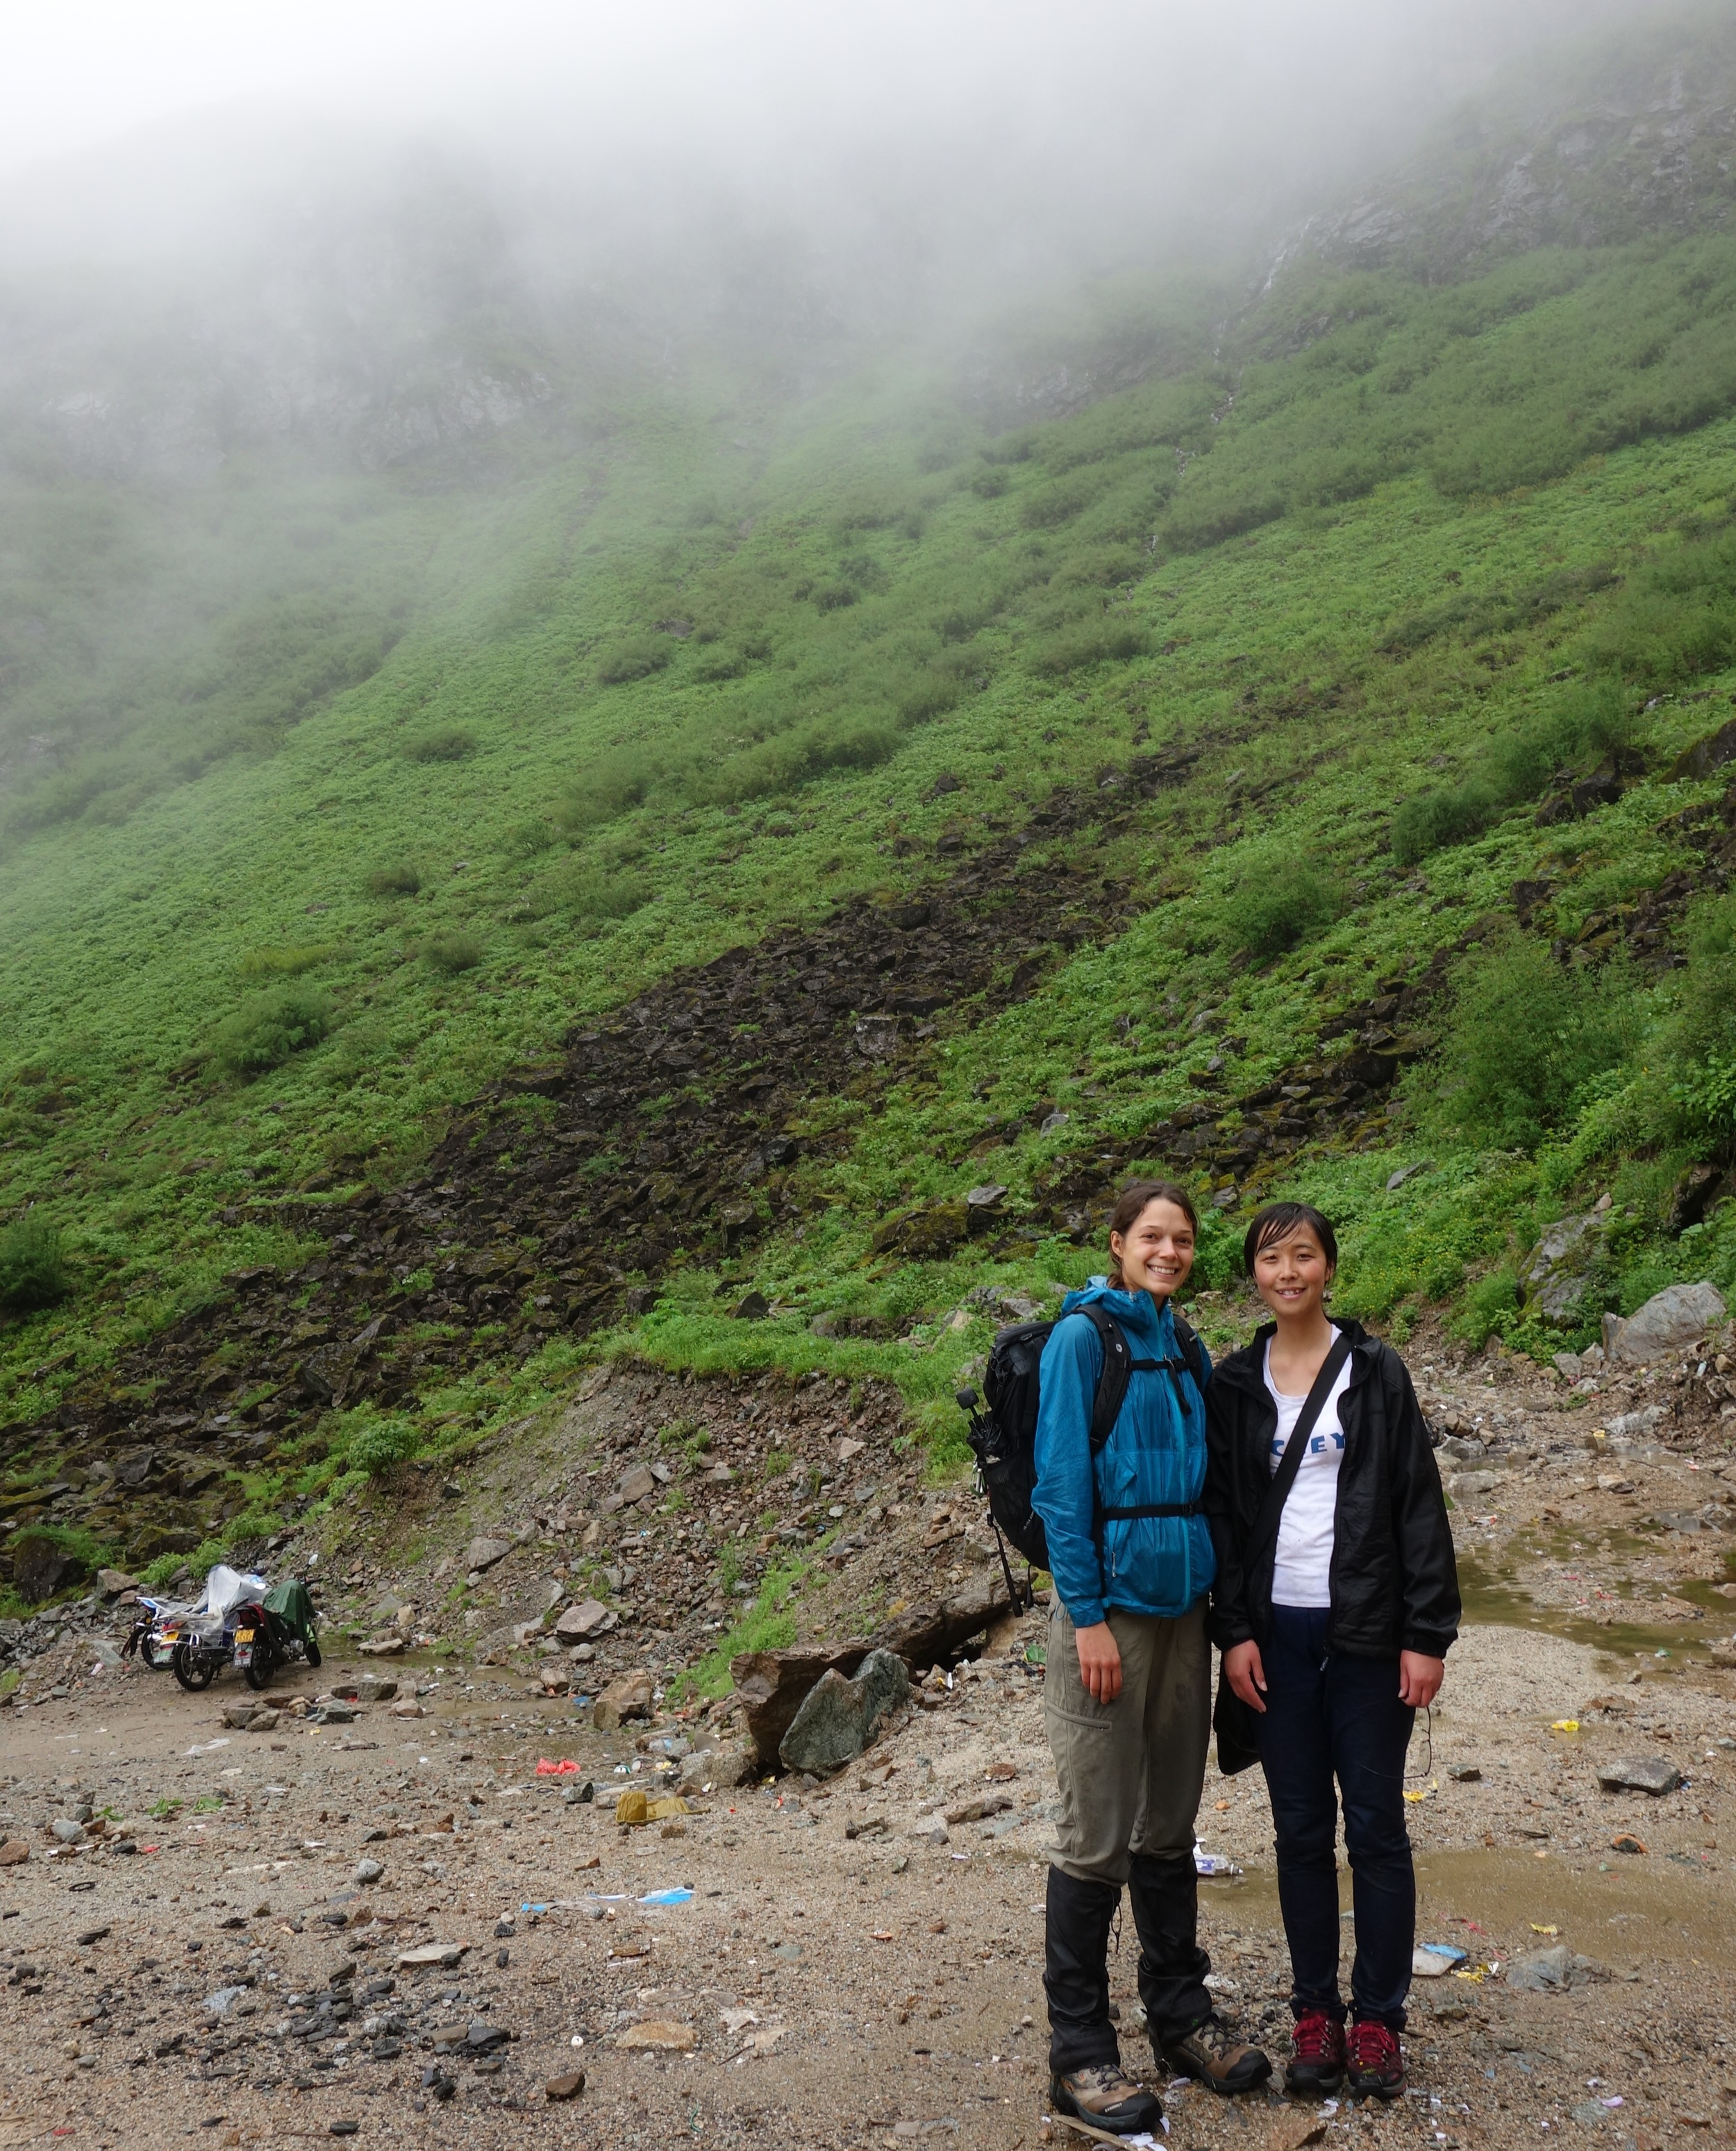 Ya-Ping and me after a long day of hiking in the pouring rain. No, we did not ride those dirt bikes up. We never saw another person the entire 10 hours we spent out there but Yaping said they were probably medicinal plant collectors from the local village.